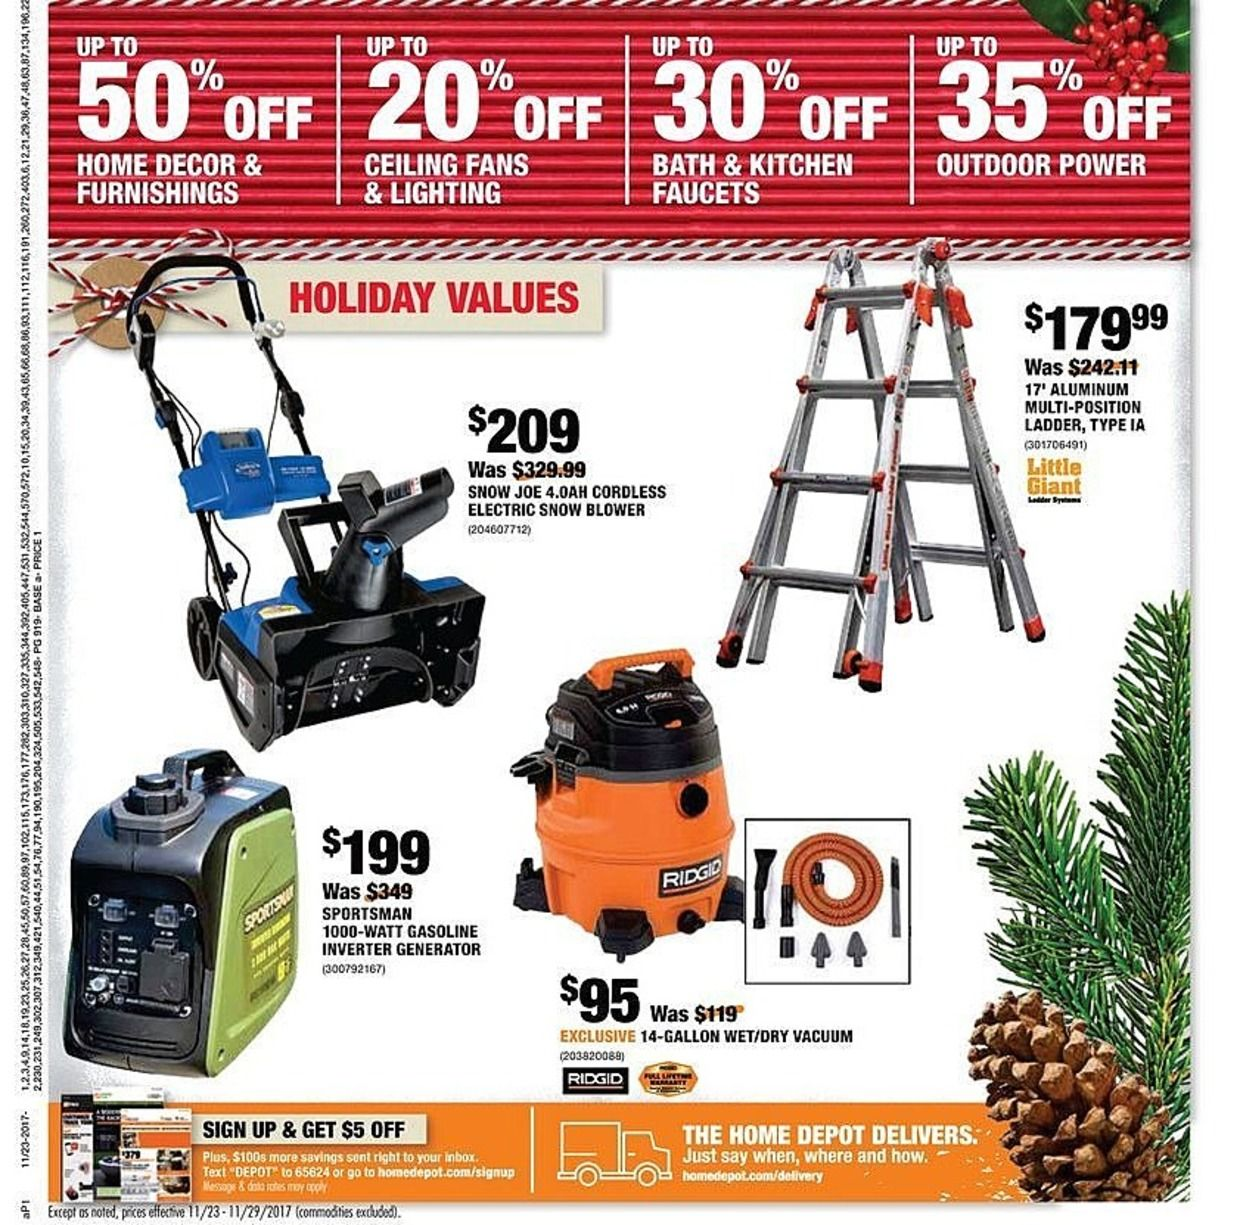 Home Depot Black Friday 2018 Ads And Deals Browse The Home Depot Black Friday 2018 Ad Scan And The Complete Product By Pr Home Depot Coupons Black Friday Depot